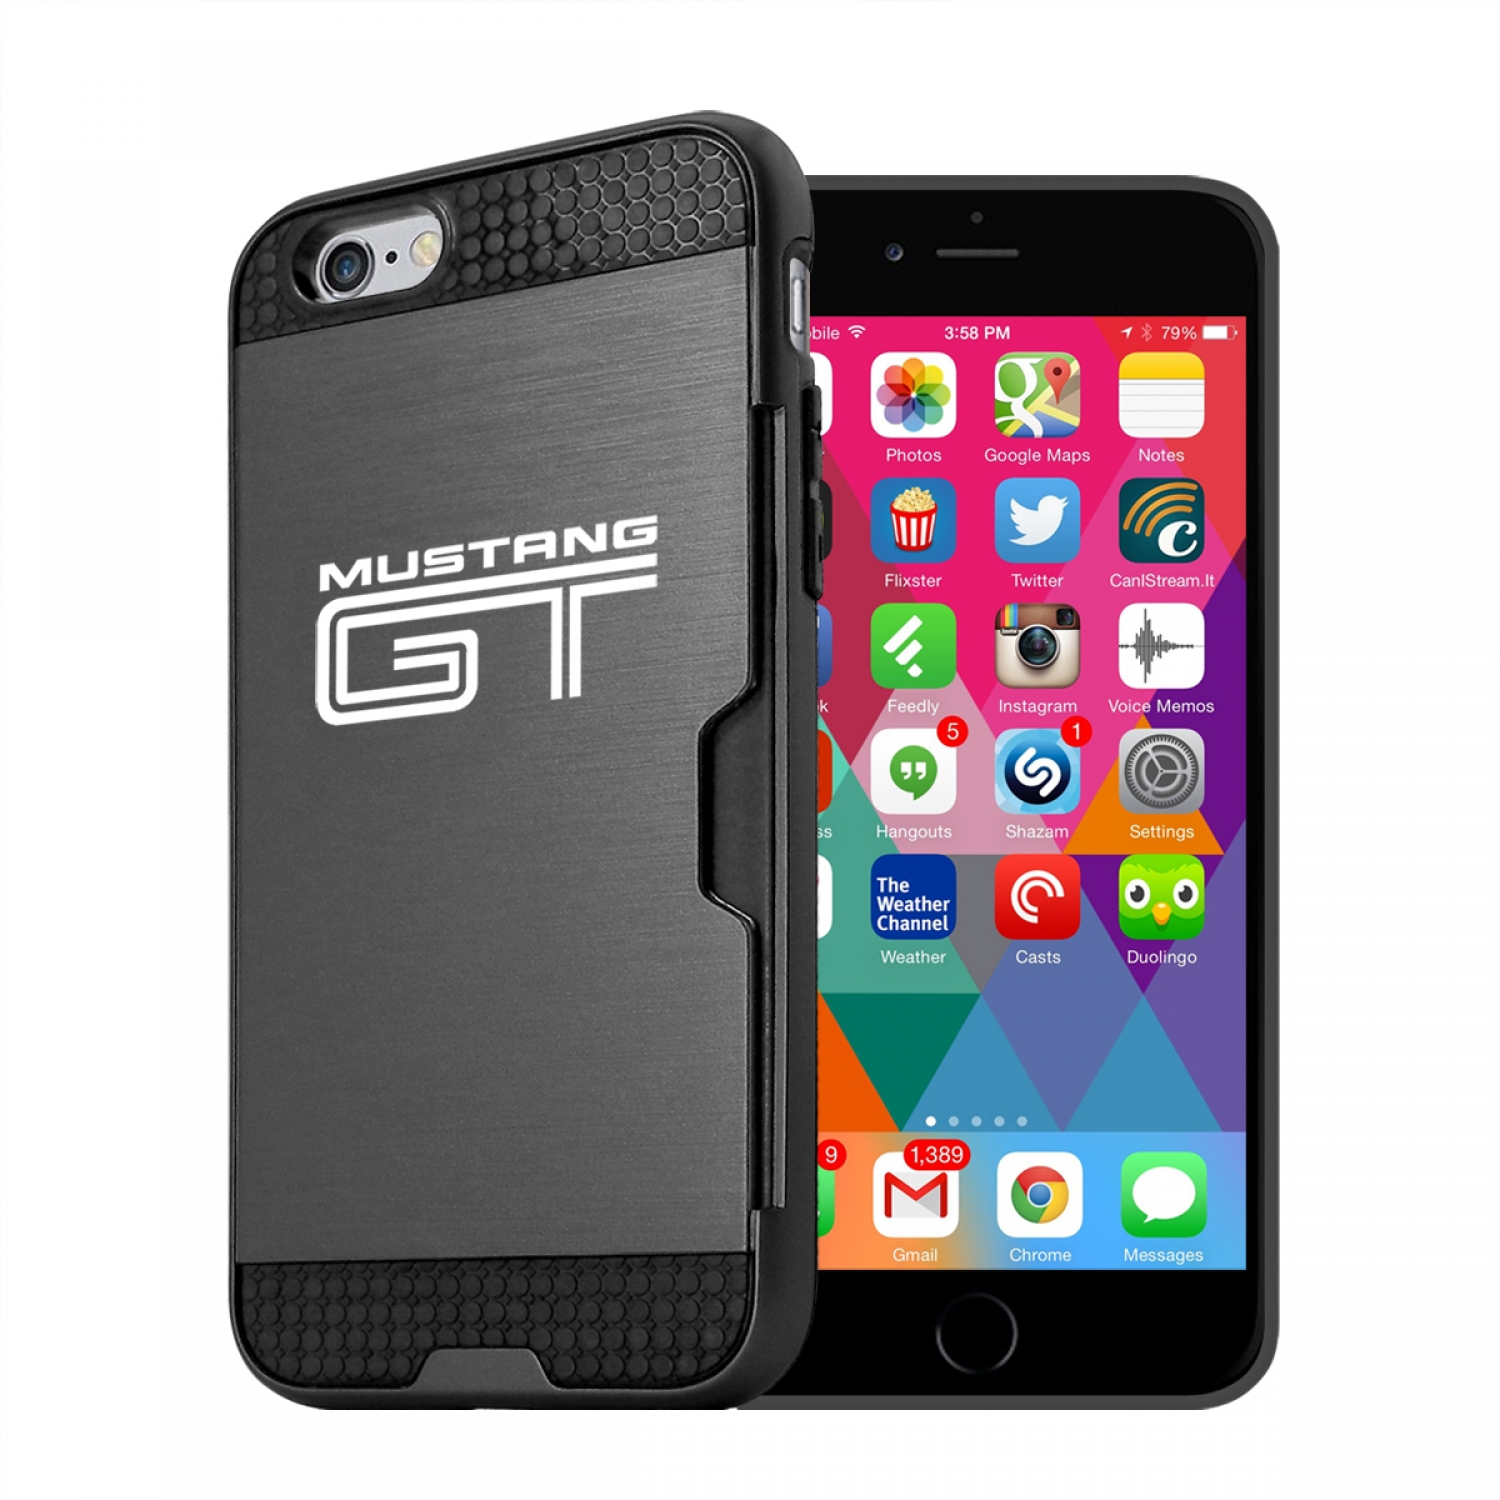 Ford Mustang GT iPhone 6 6s Ultra Thin TPU Black Phone Case with Credit Card Slot Wallet